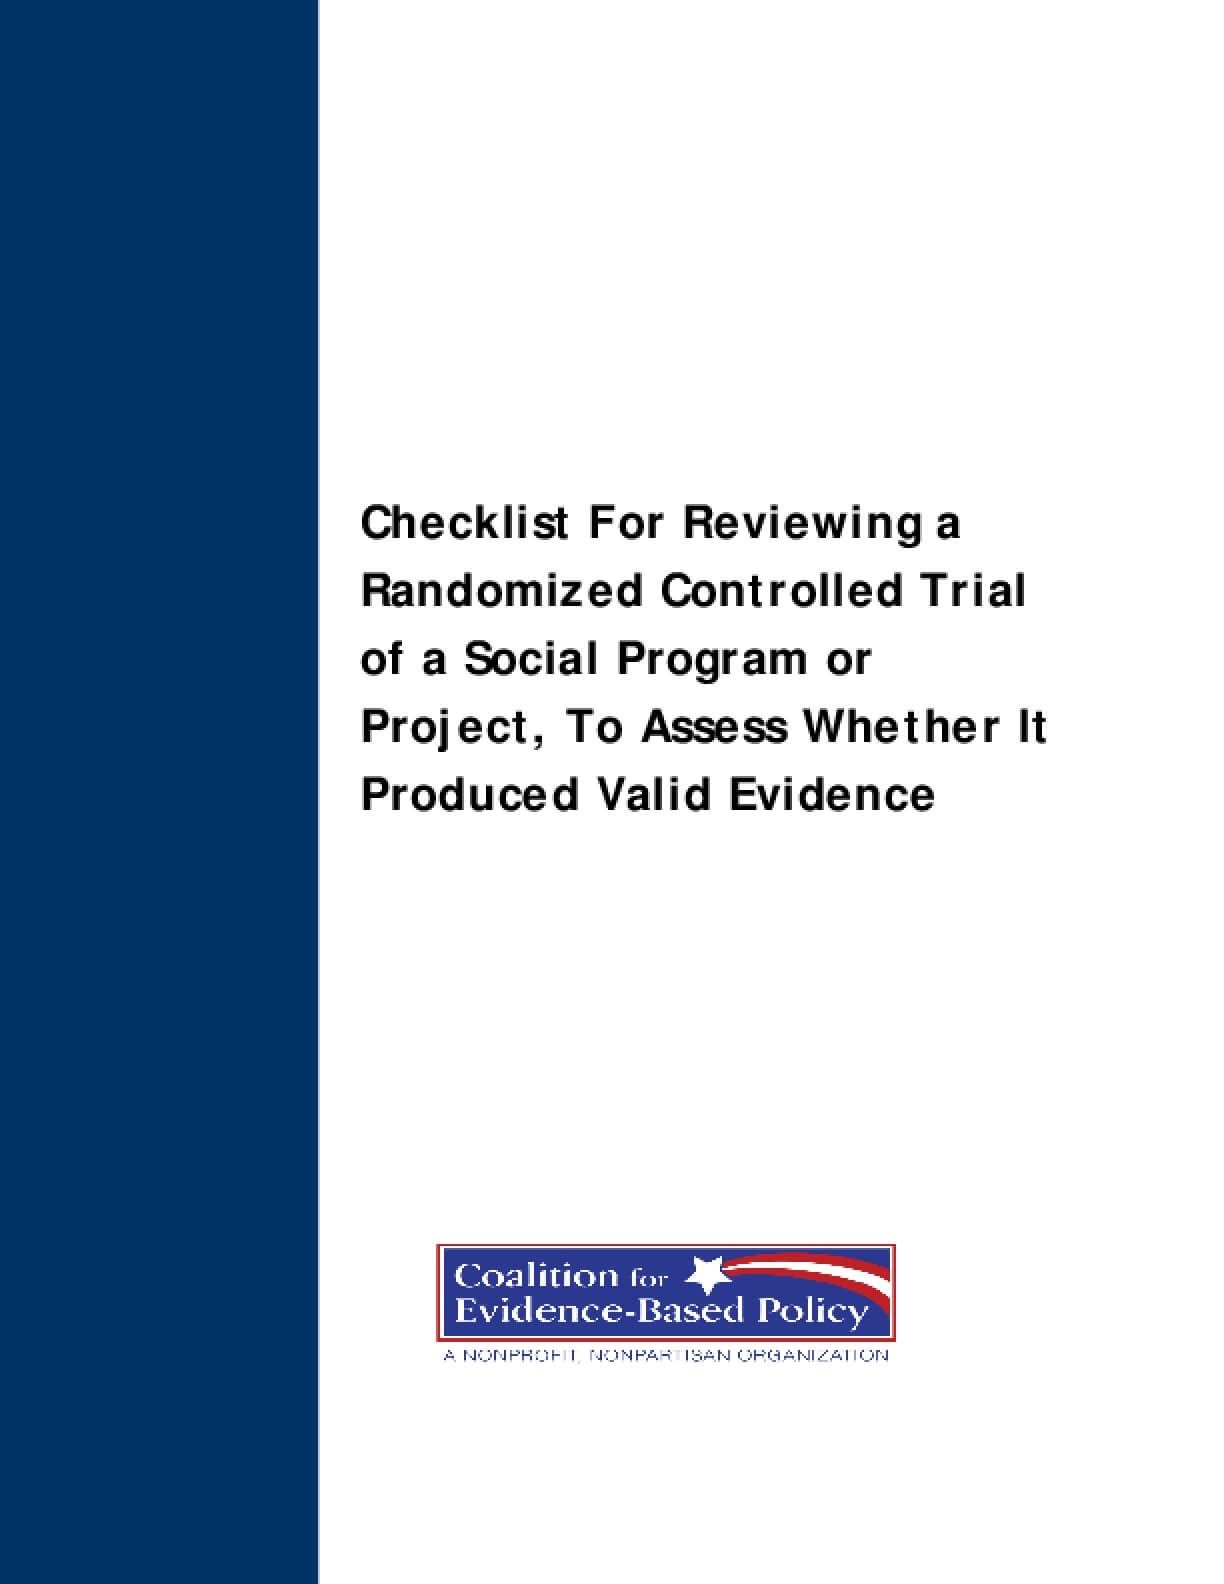 Checklist for Reviewing a Randomized Controlled Trial or a Social Program or Project, To Assess Whether it Produced Valid Evidence